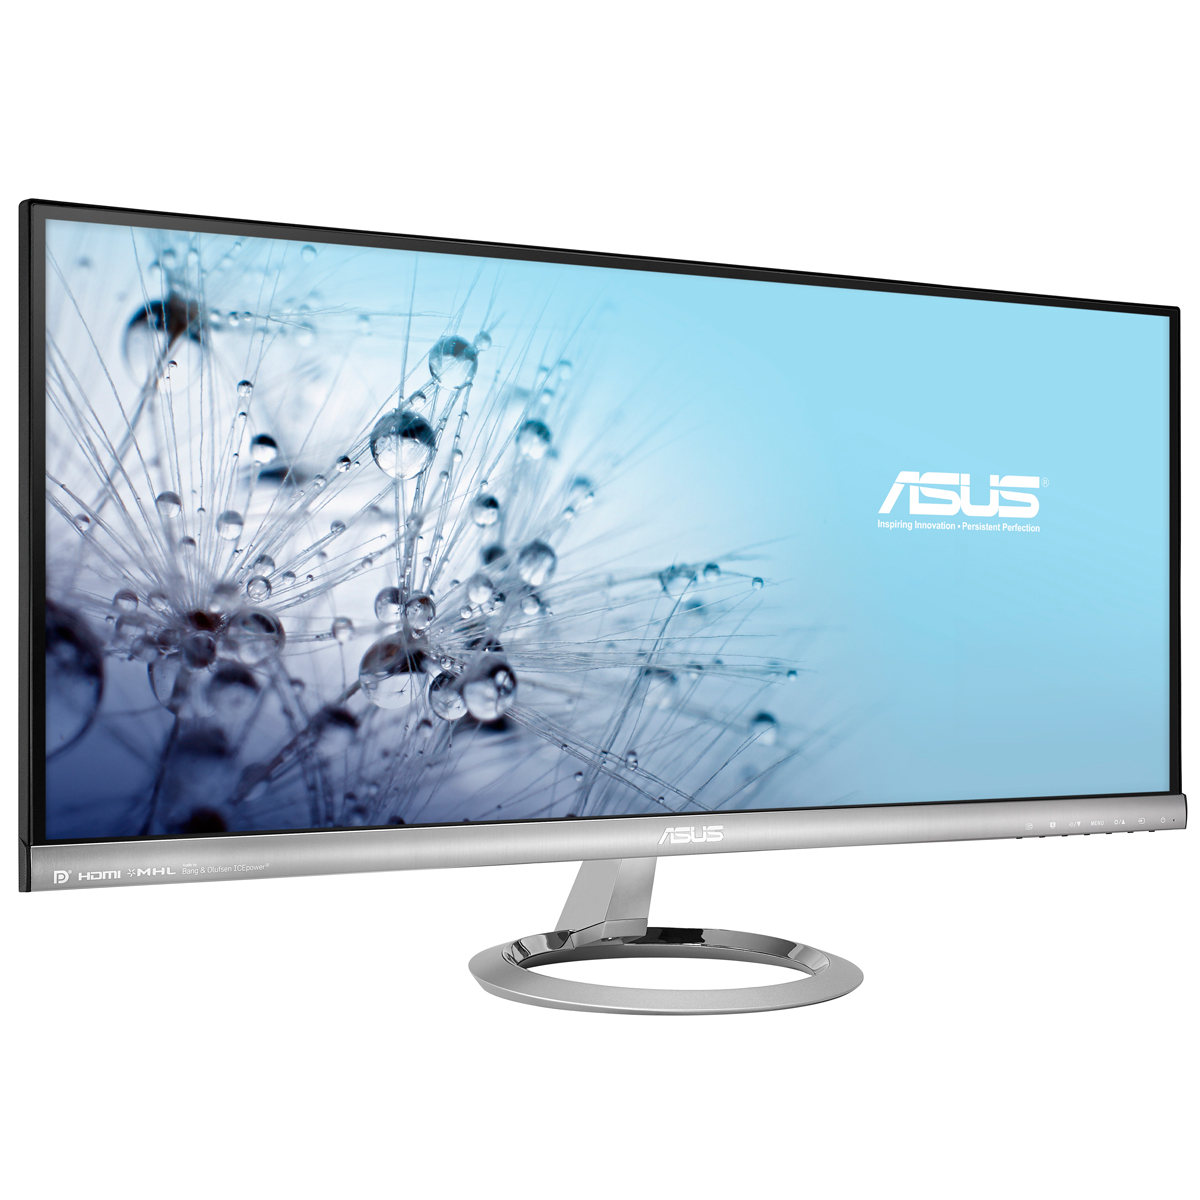 Asus 29 led designo mx299q ecran pc asus sur ldlc for Ecran retouche photo ips